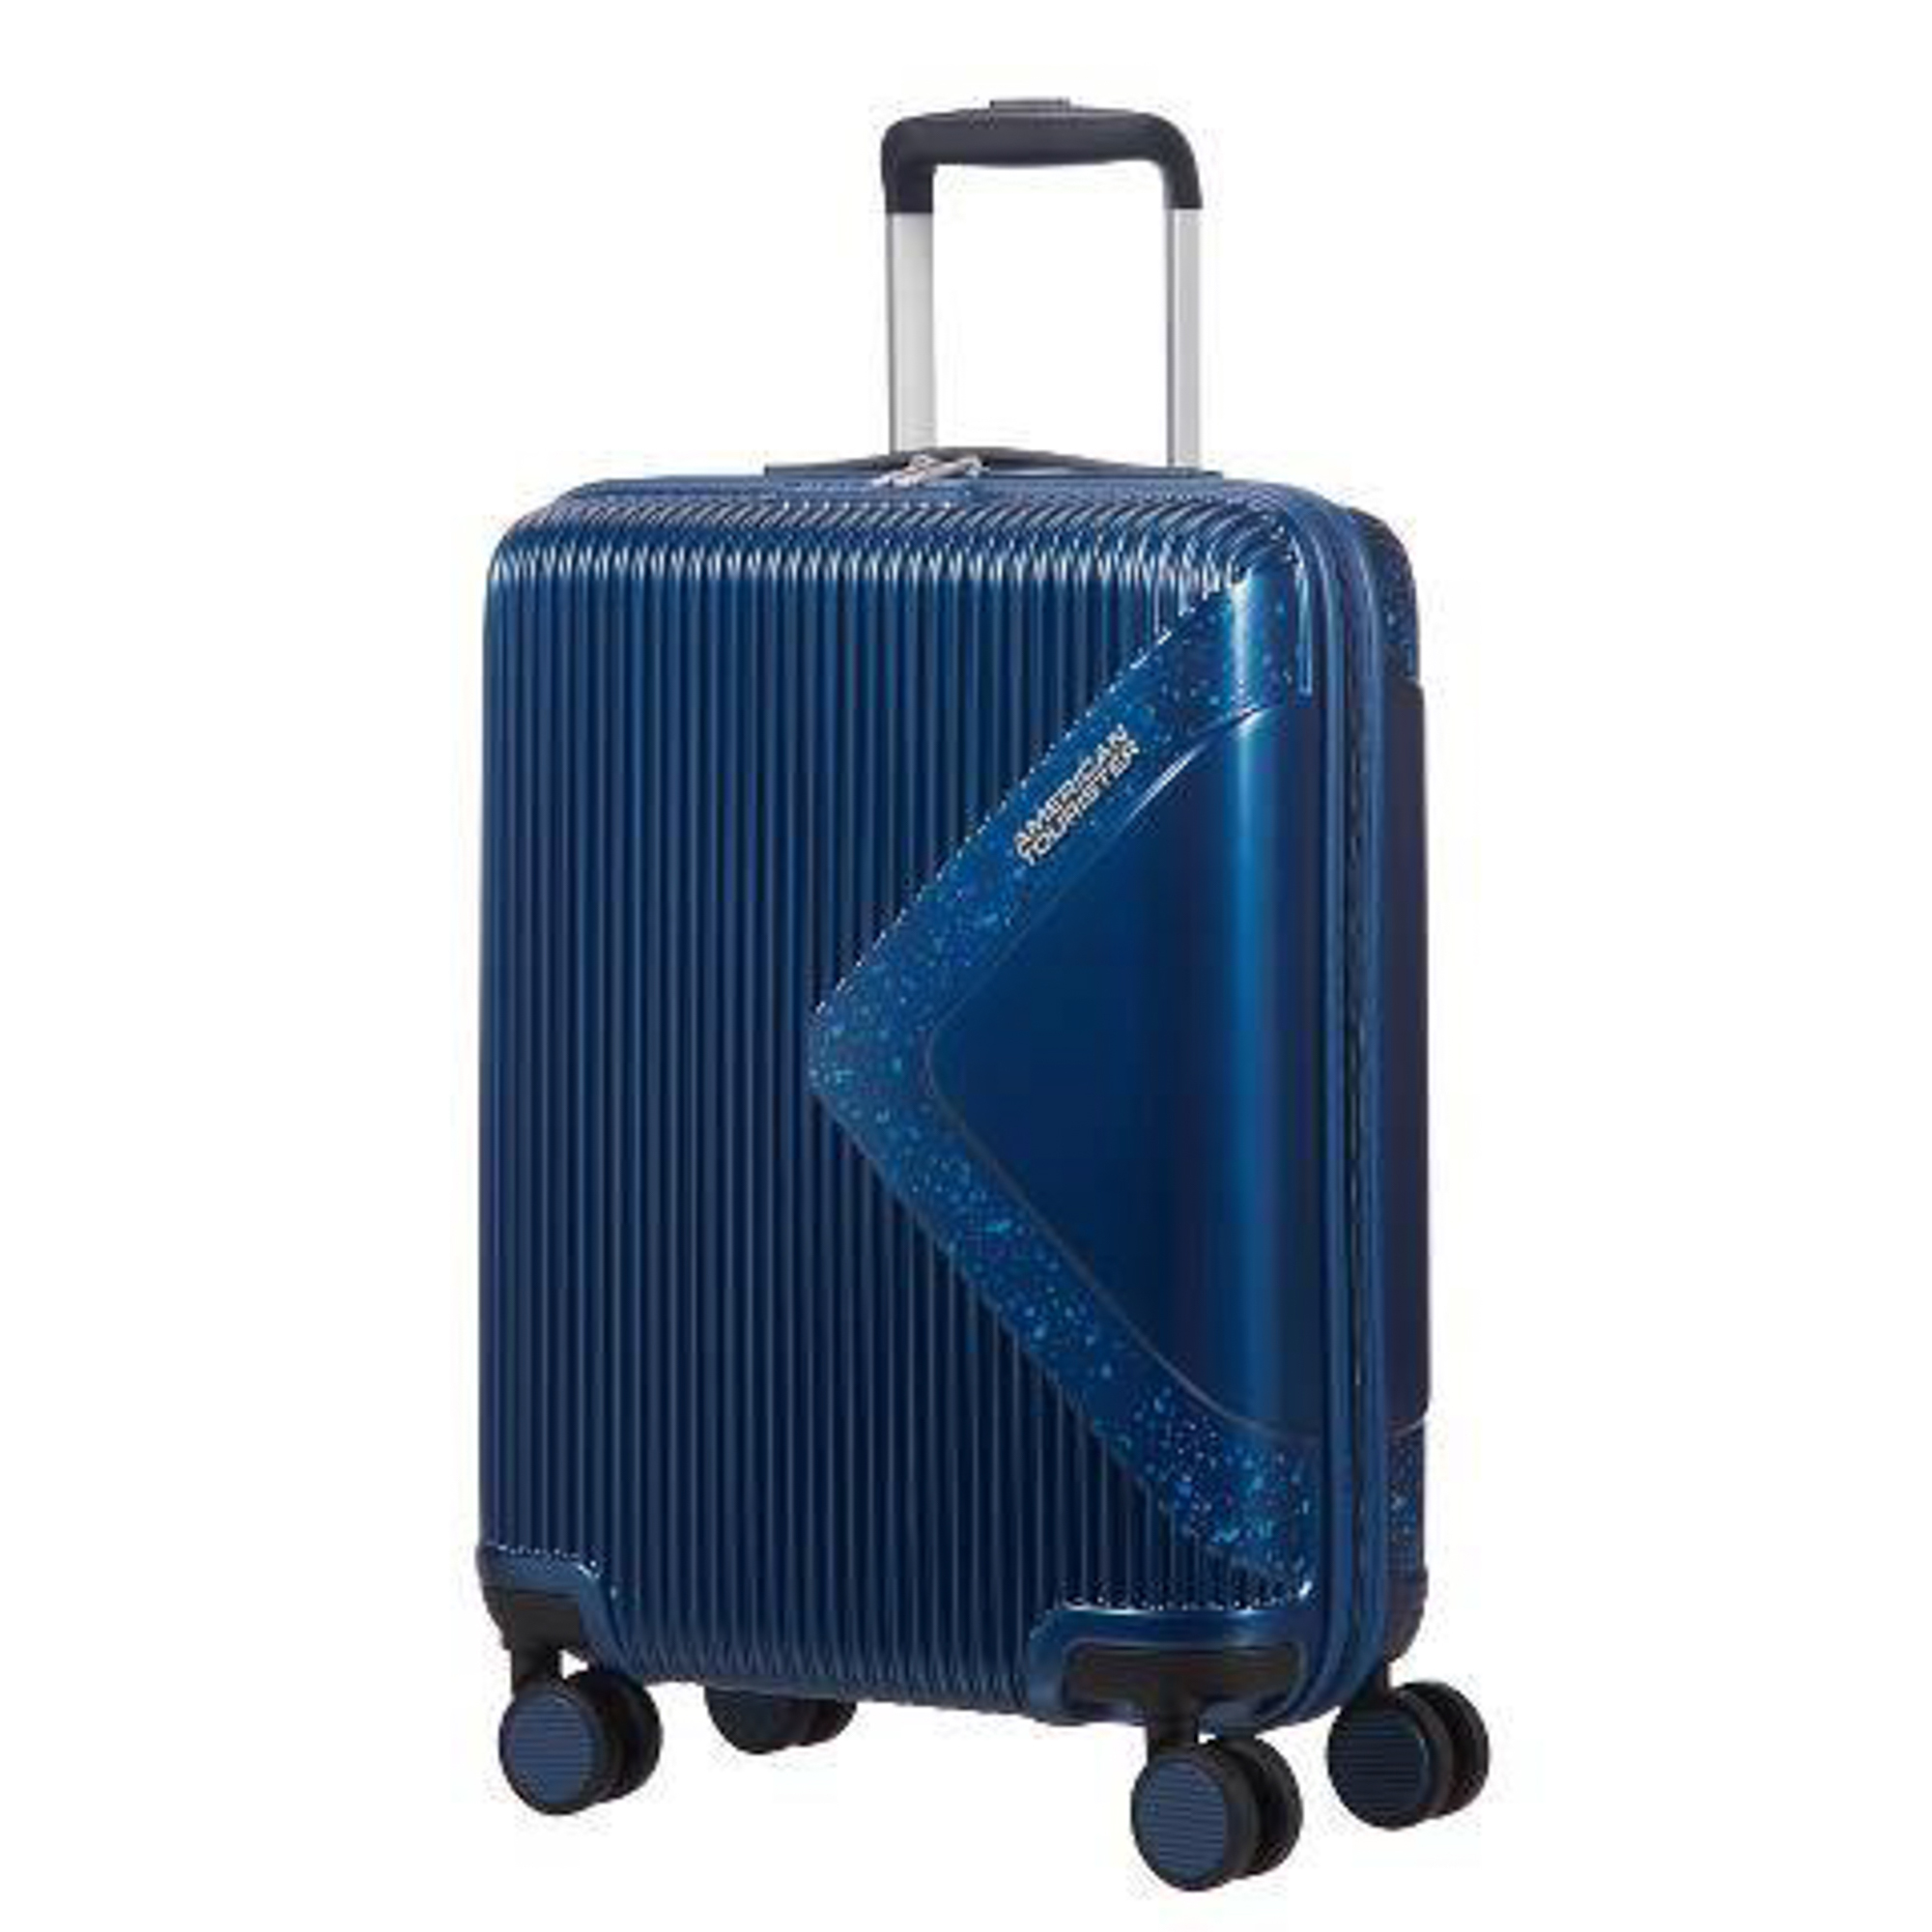 Чемодан American Tourister Modern dream синий с блеском S